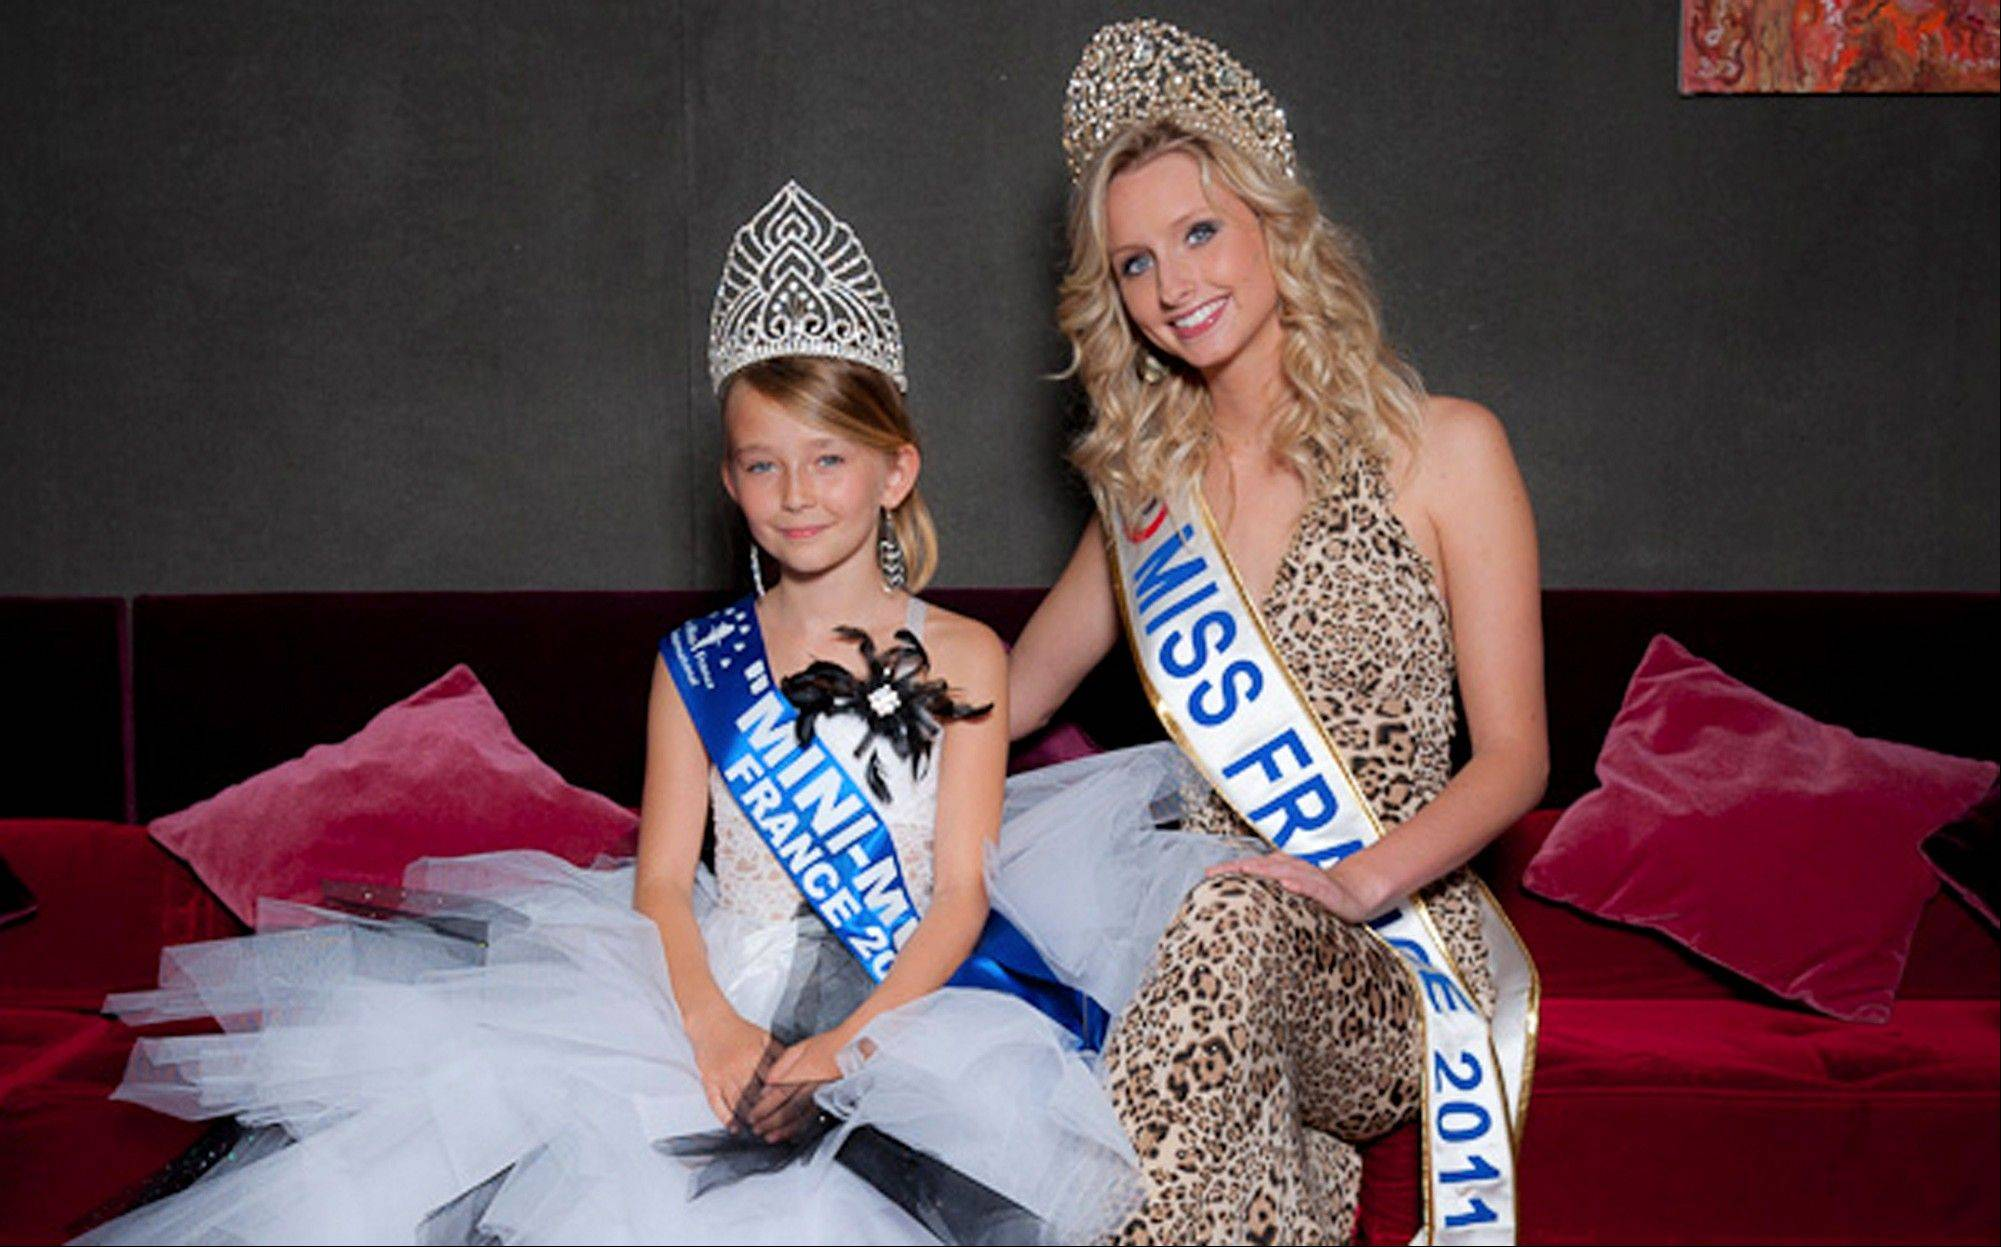 France�s Senate voted to ban beauty pageants for children under 16 in an effort to protect children � especially girls � from being sexualized too early.